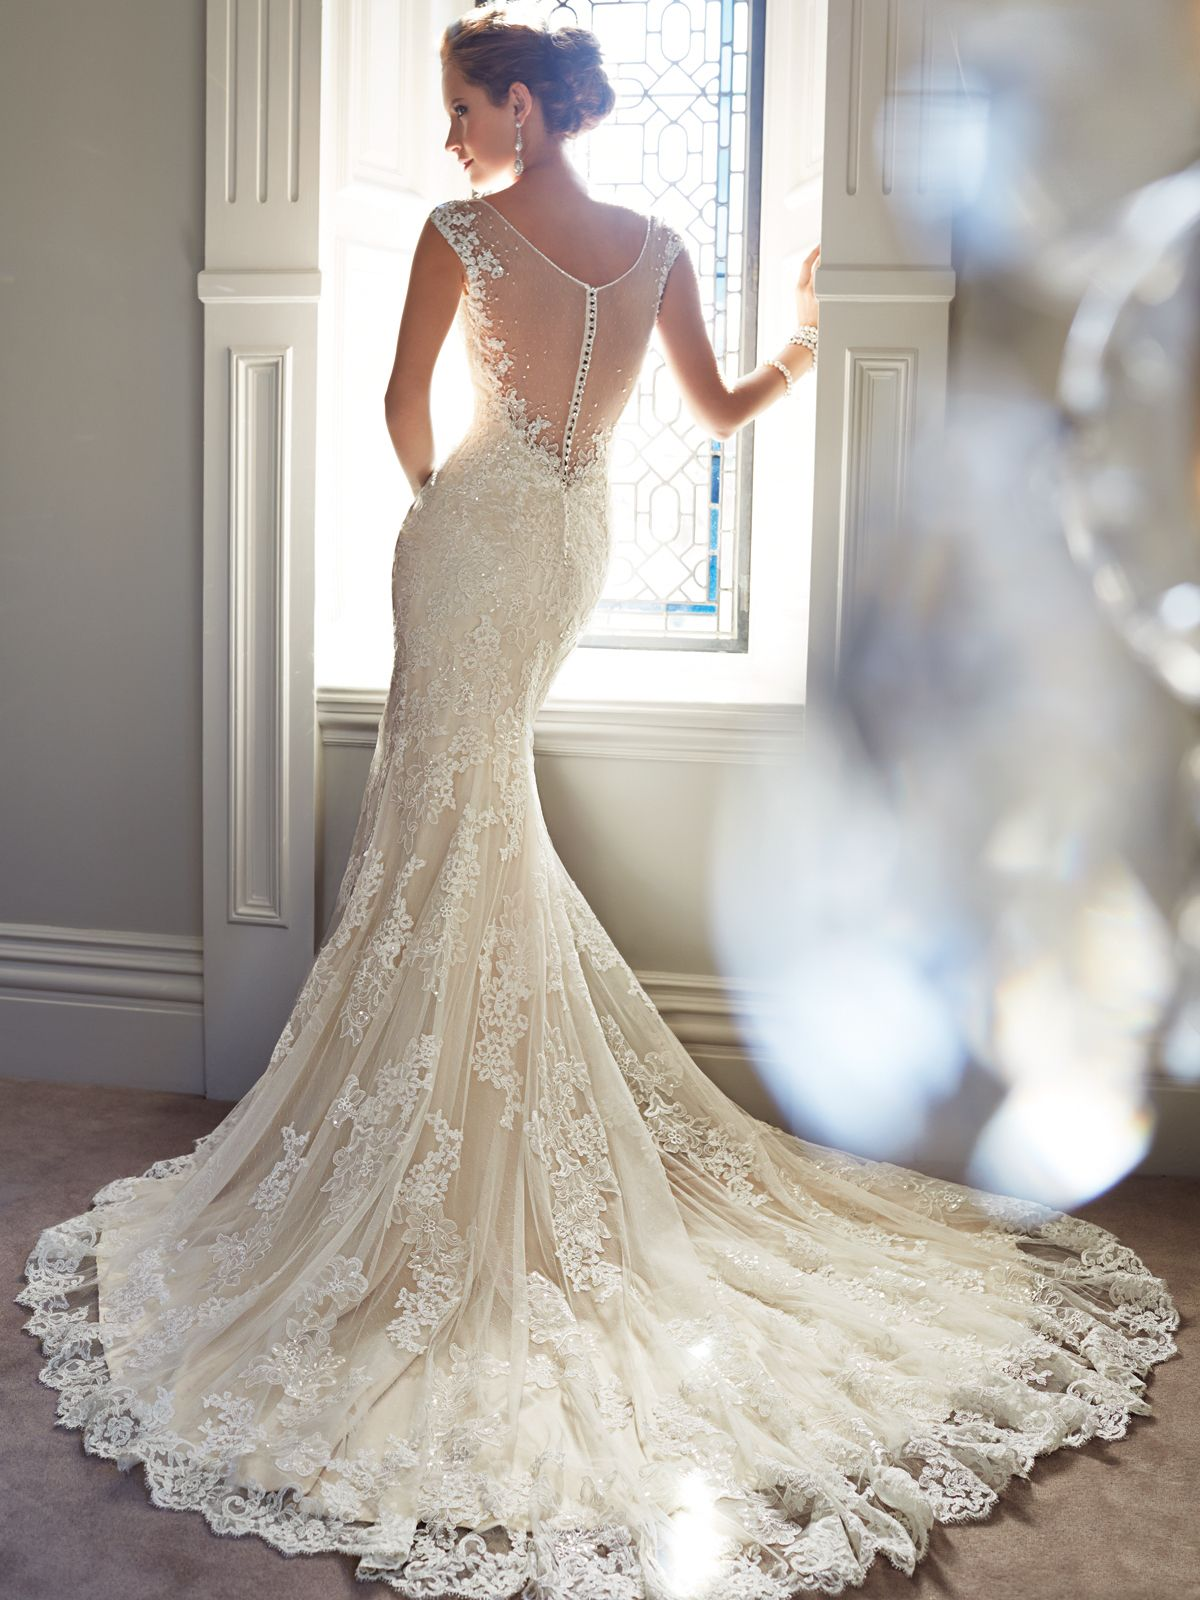 dresses that will make you say uci wish i wore that on my wedding